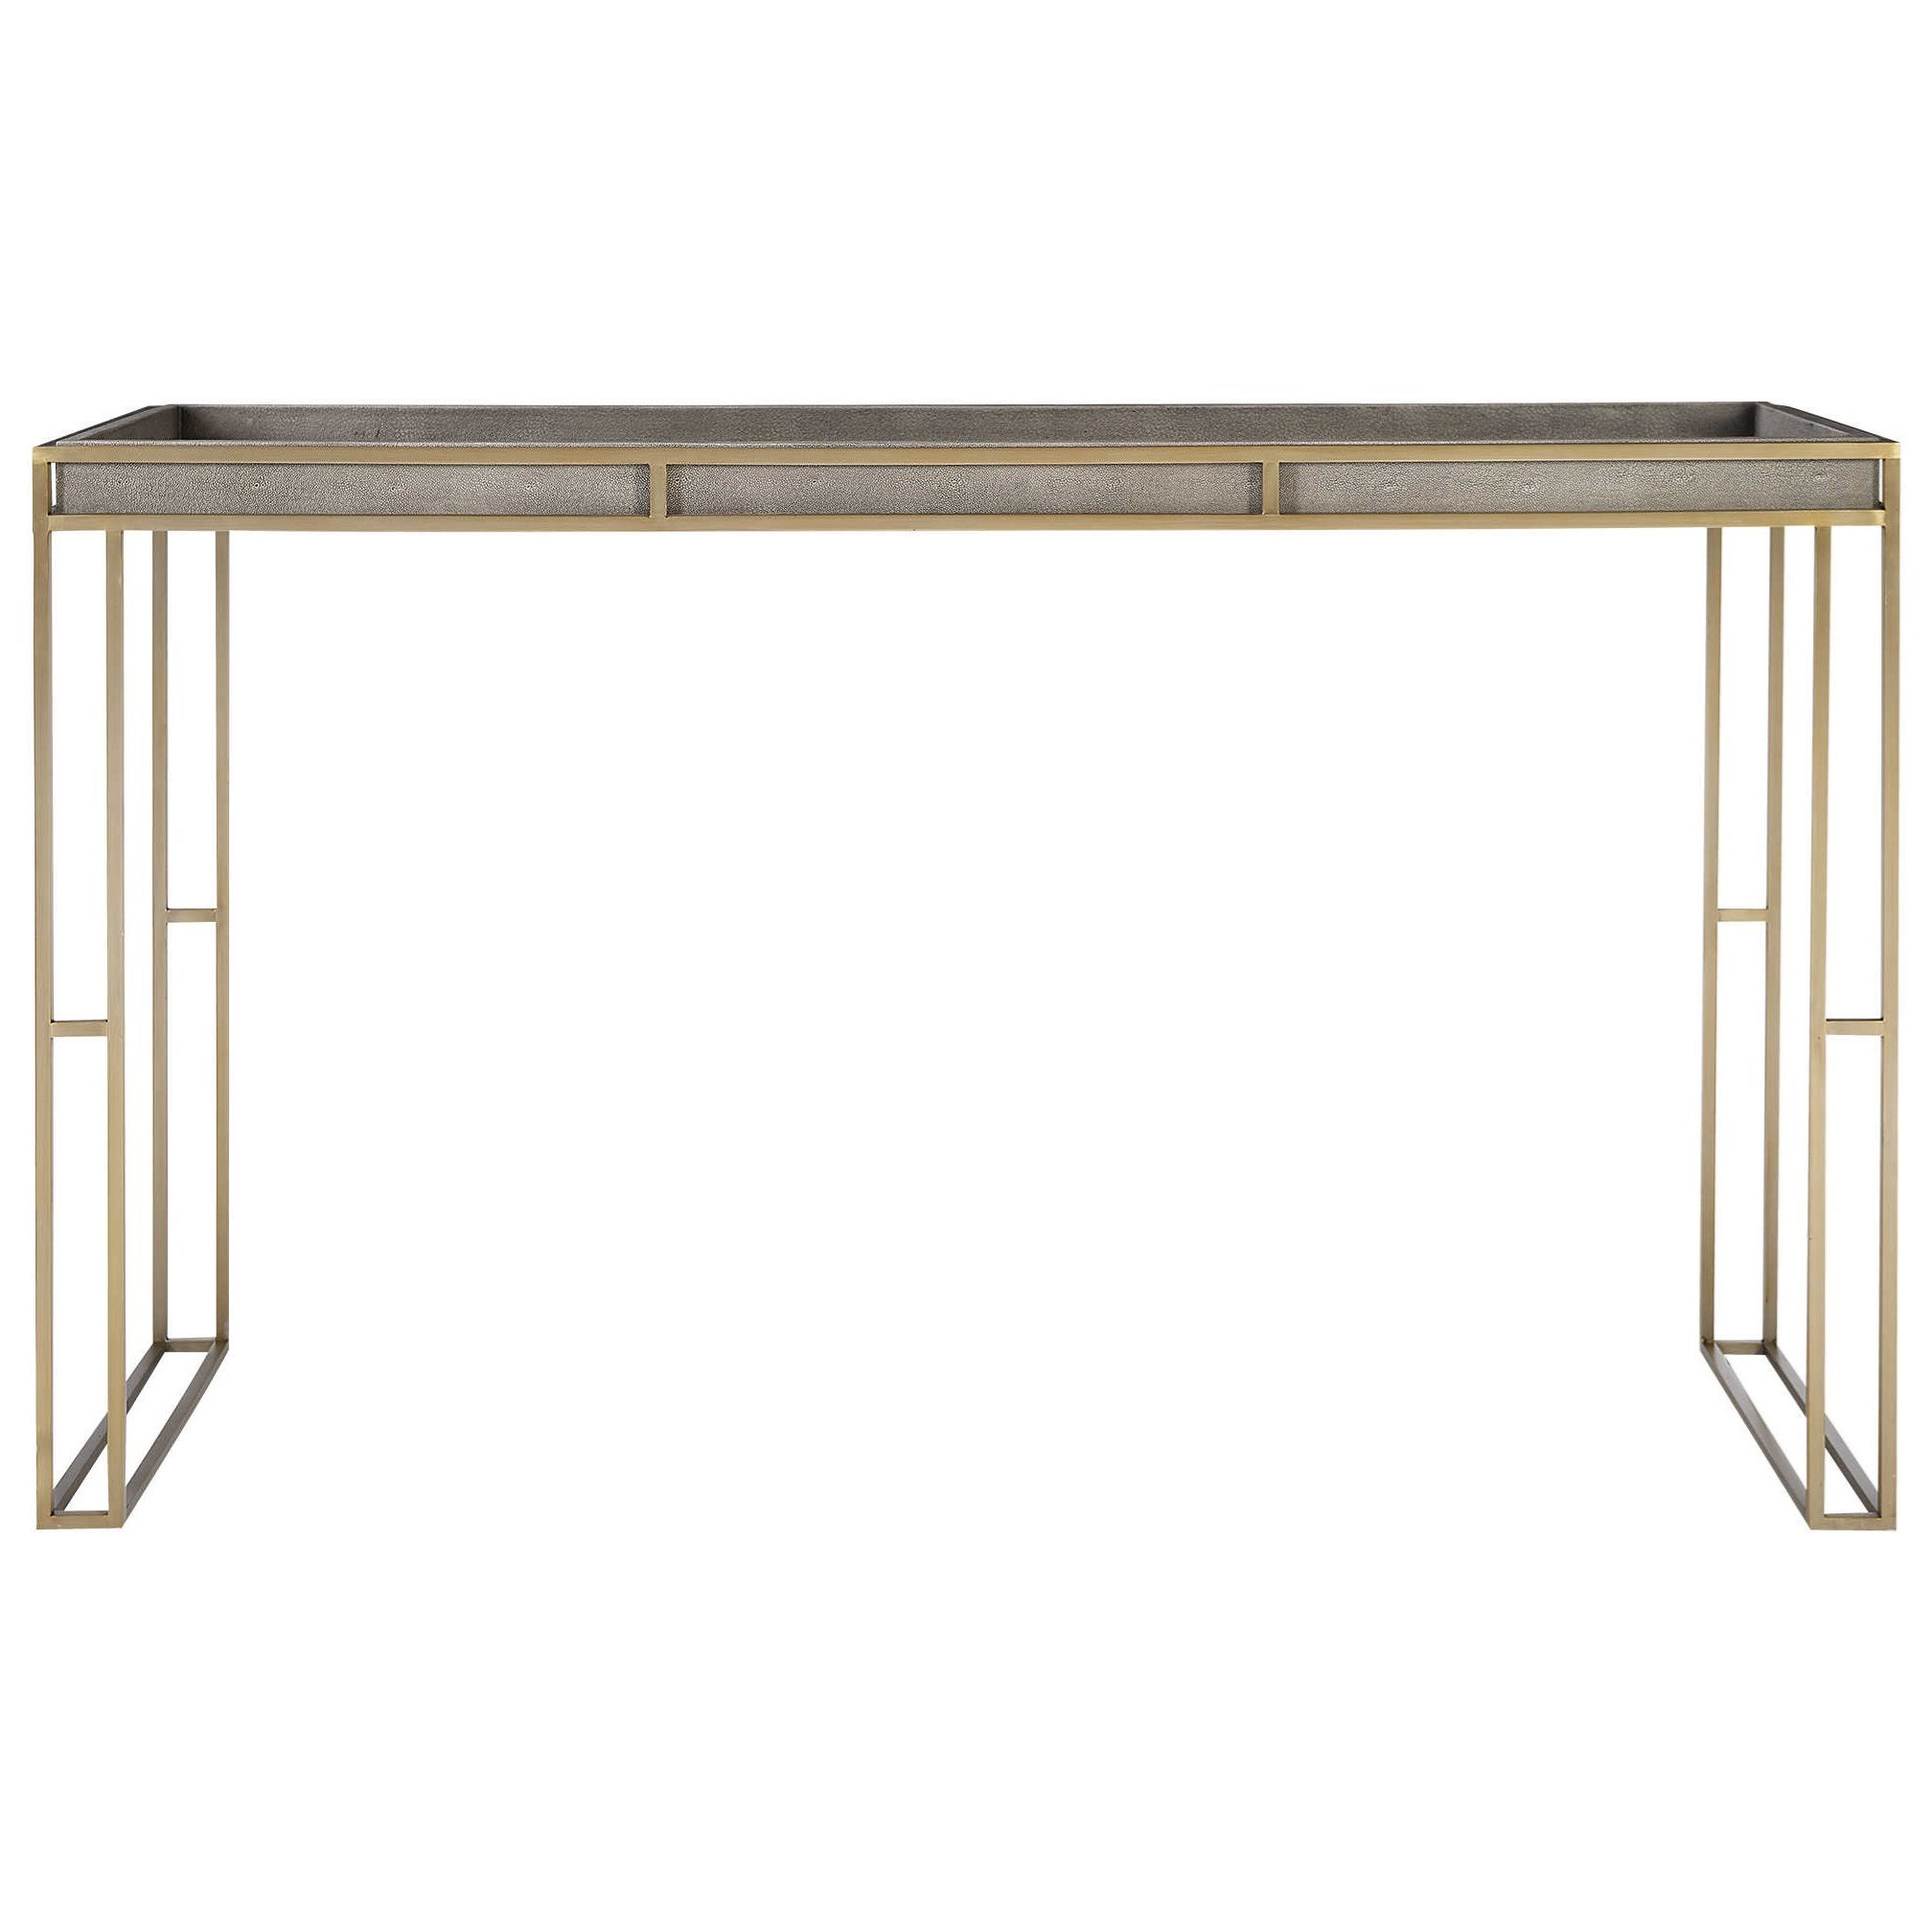 Accent Furniture - Occasional Tables Cardew Modern Console Table by Uttermost at Upper Room Home Furnishings